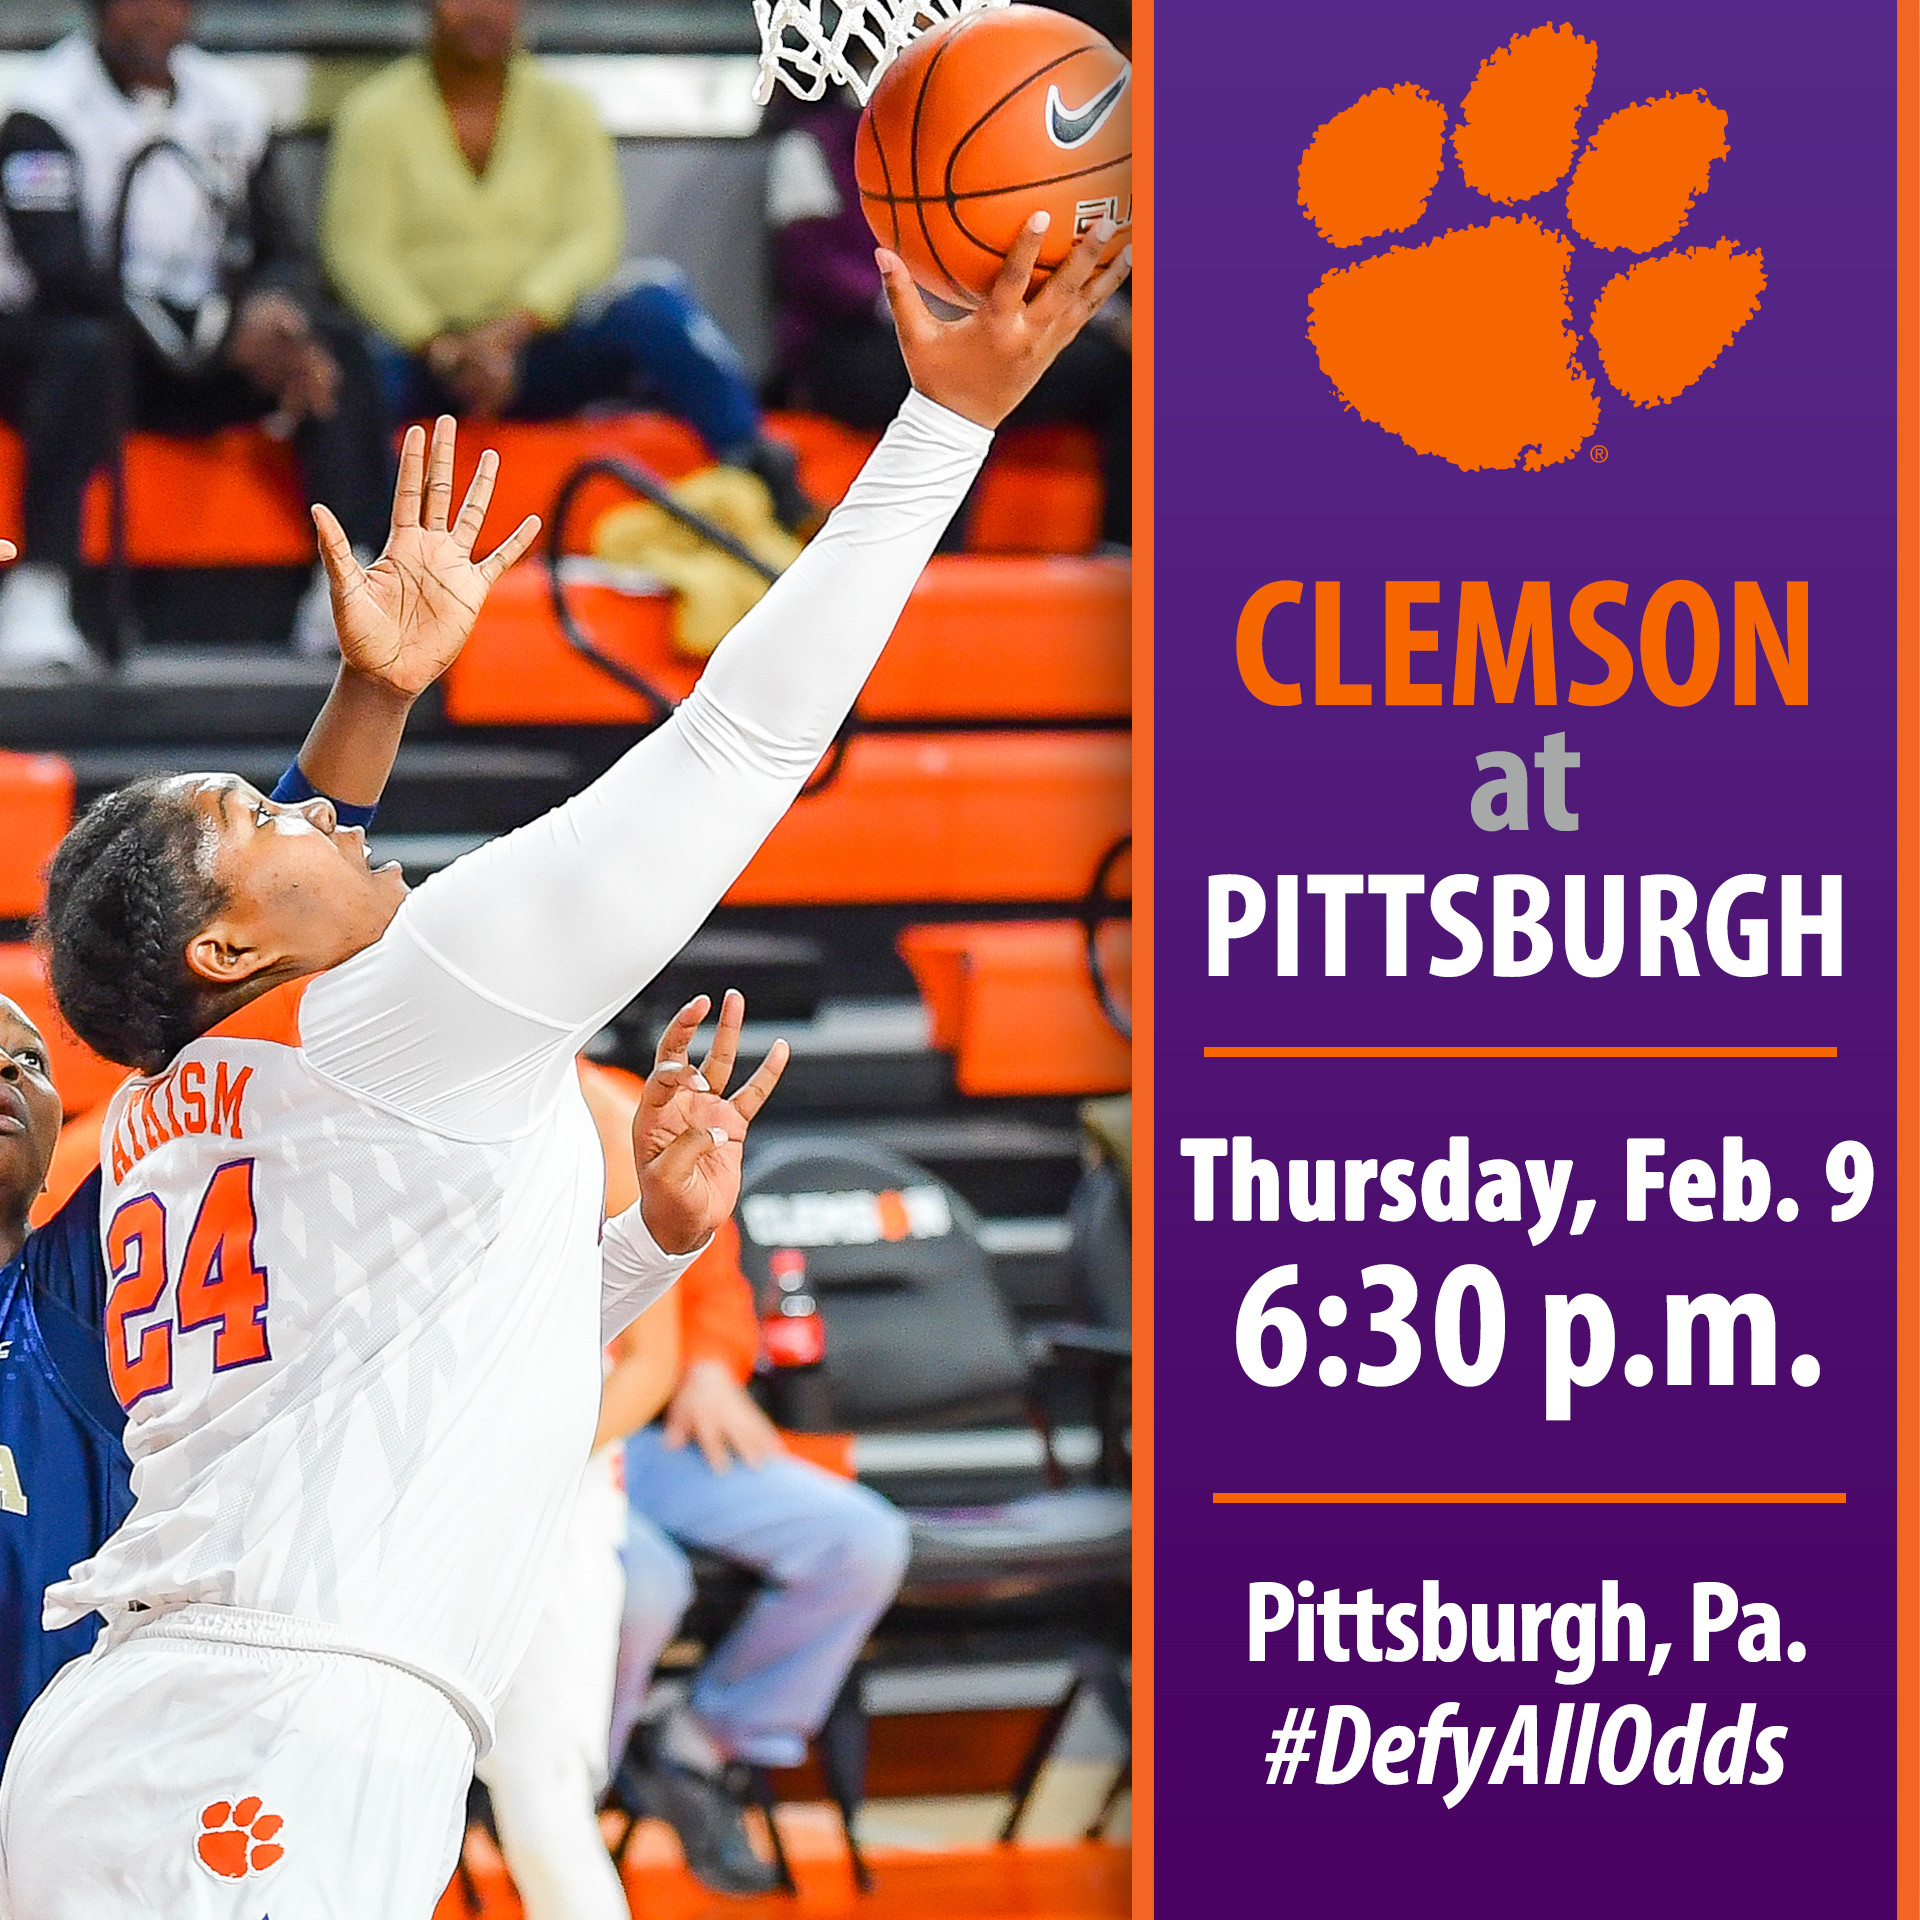 Clemson Travels to Pittsburgh to Face the Panthers Thursday